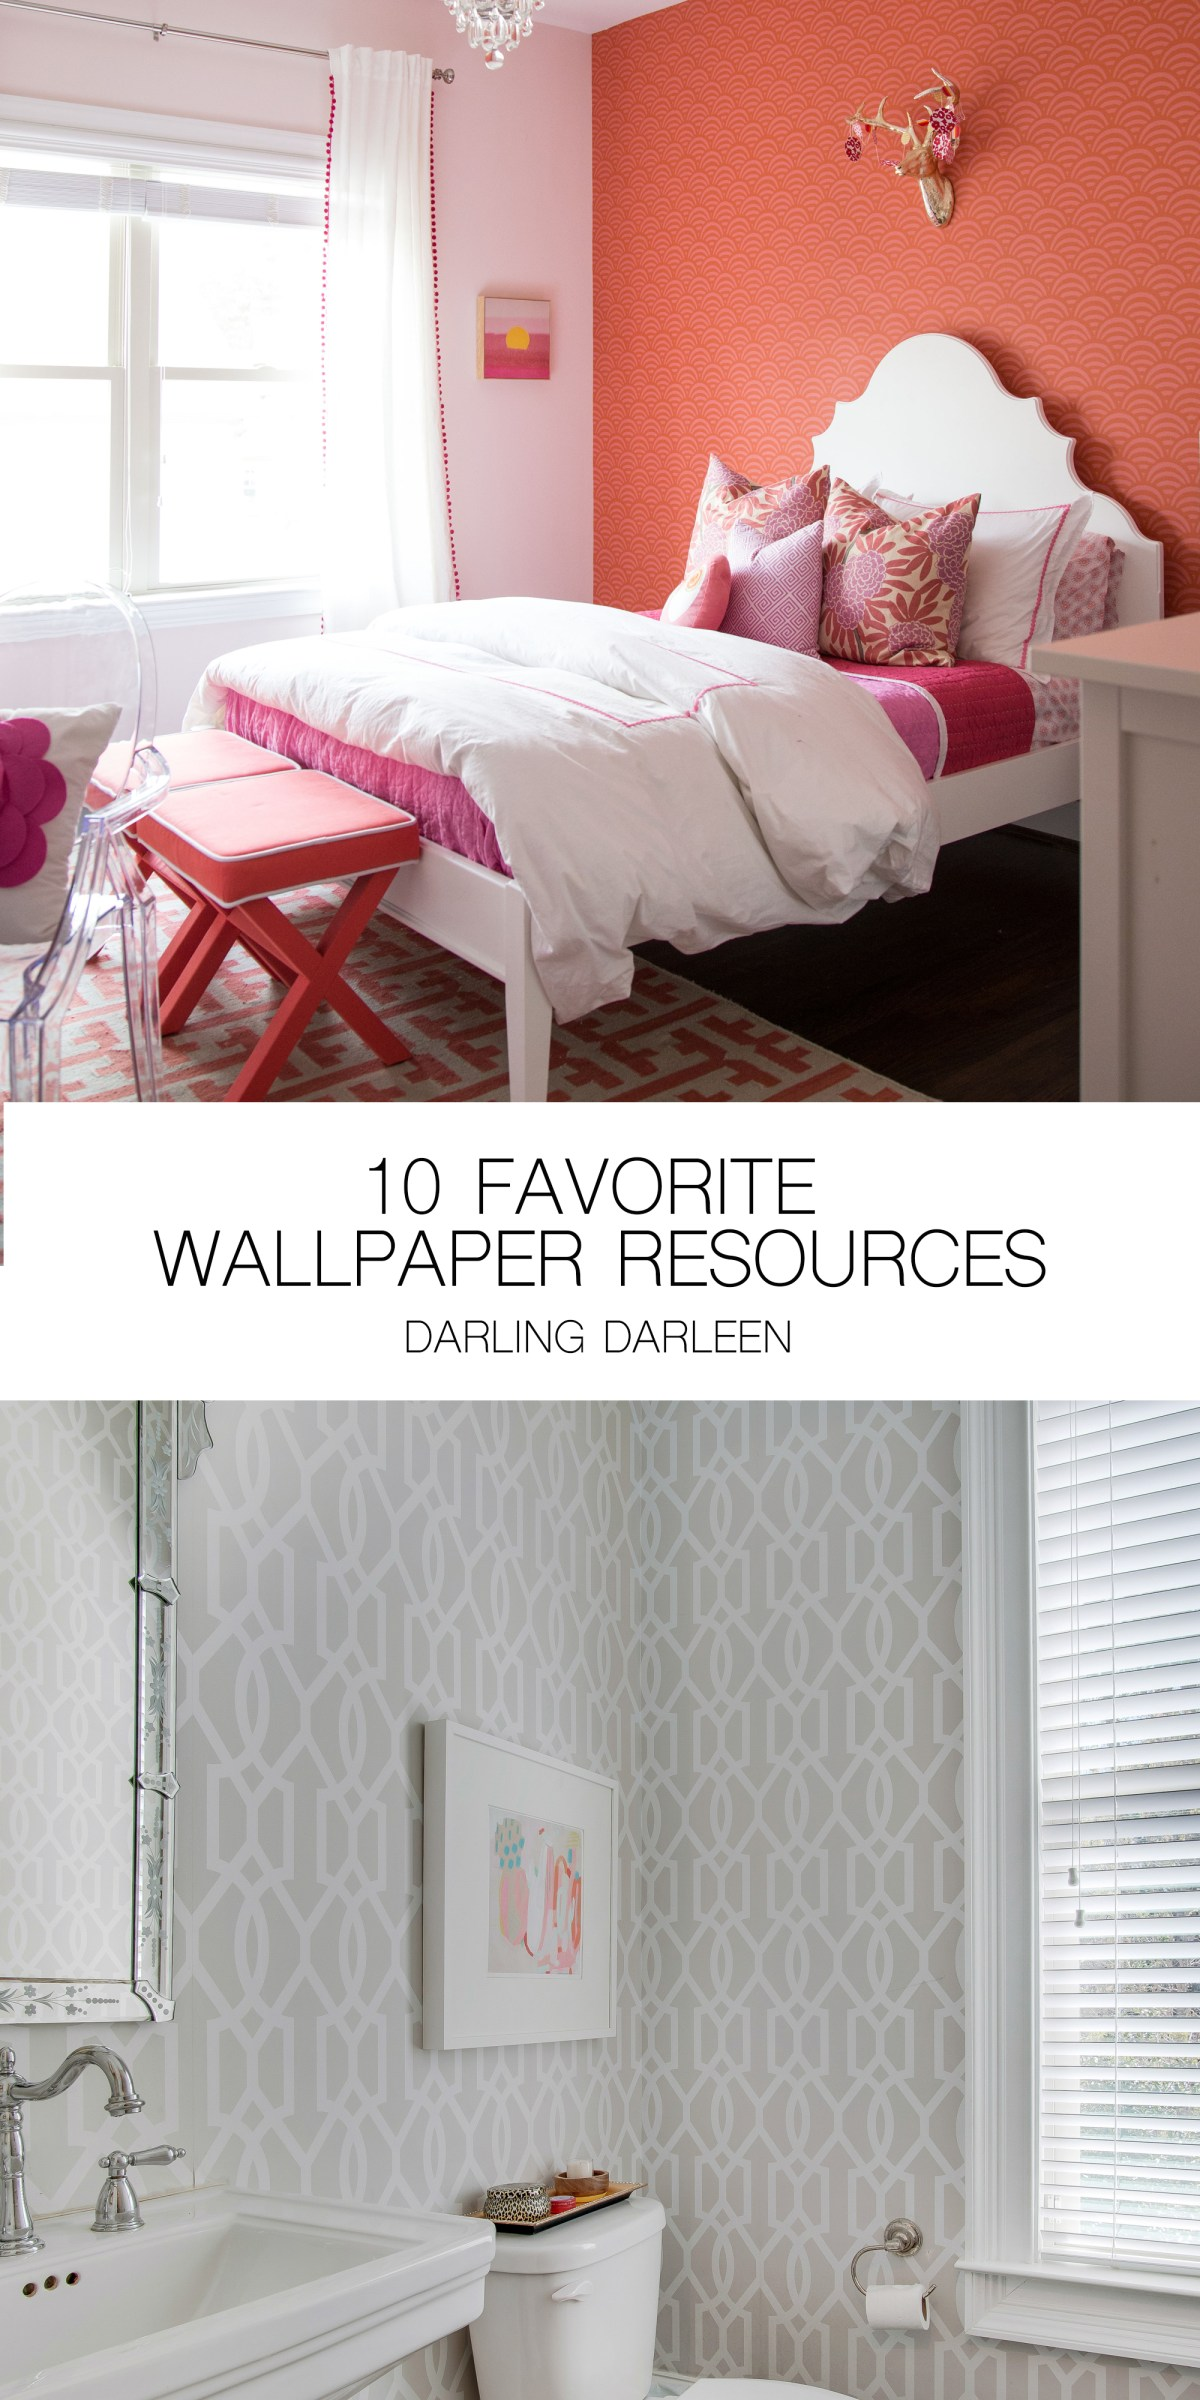 10 Favorite Wallpaper Resources for online shopping || Darling Darleen